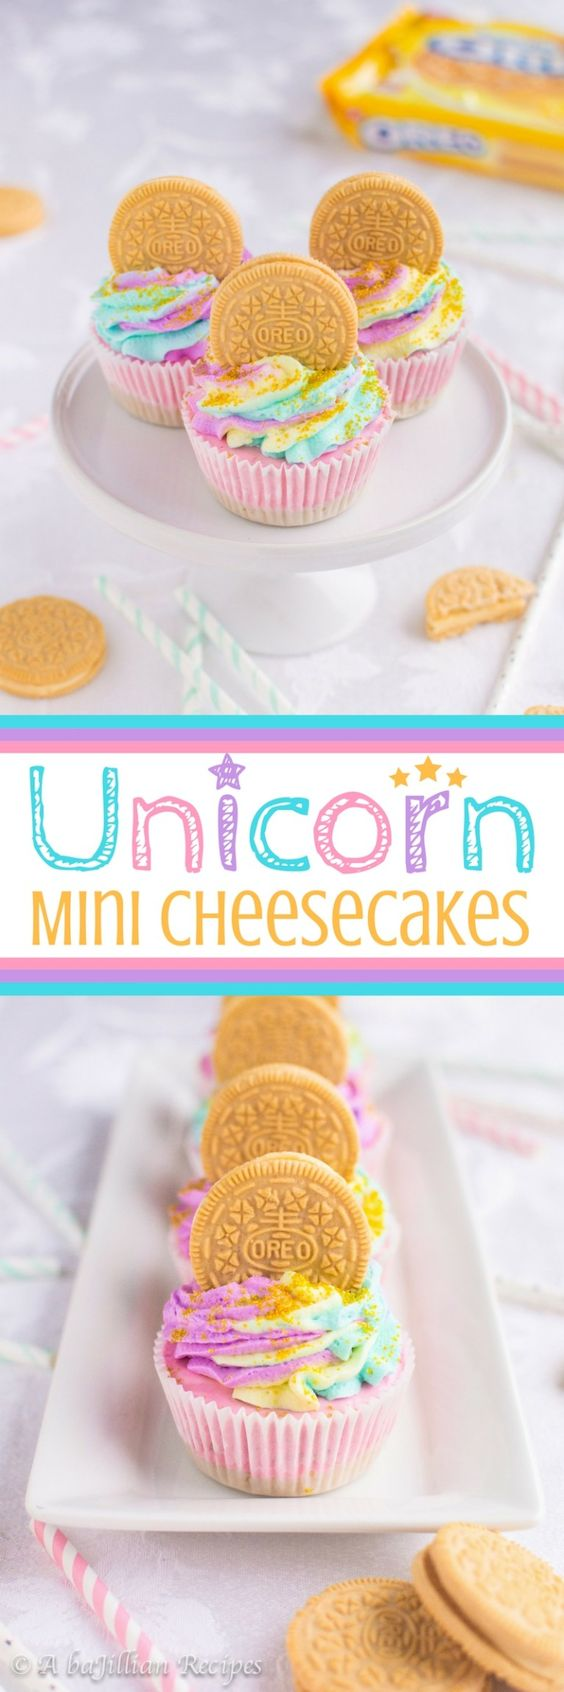 Unicorn desserts for a unicorn party: Unicorn Mini Cheesecakes